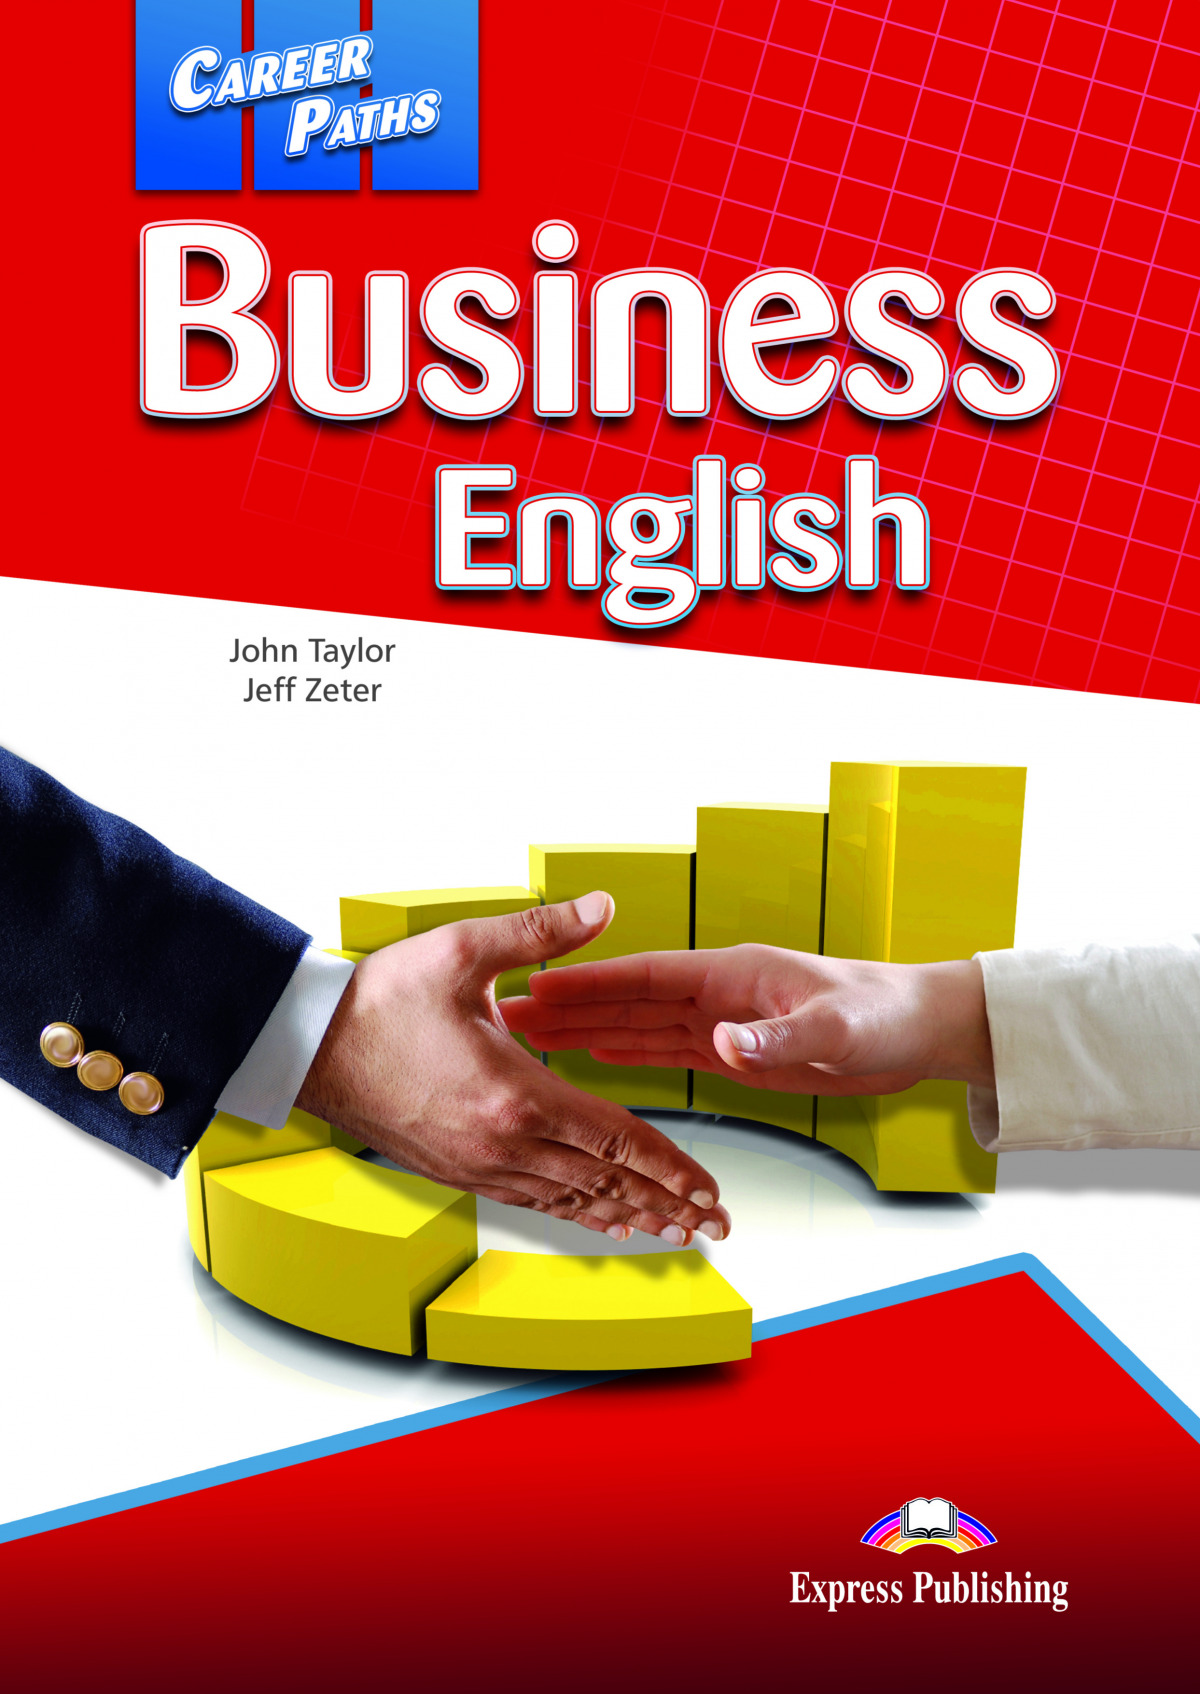 BUSINESS ENGLISH.(CAREER PATHS)